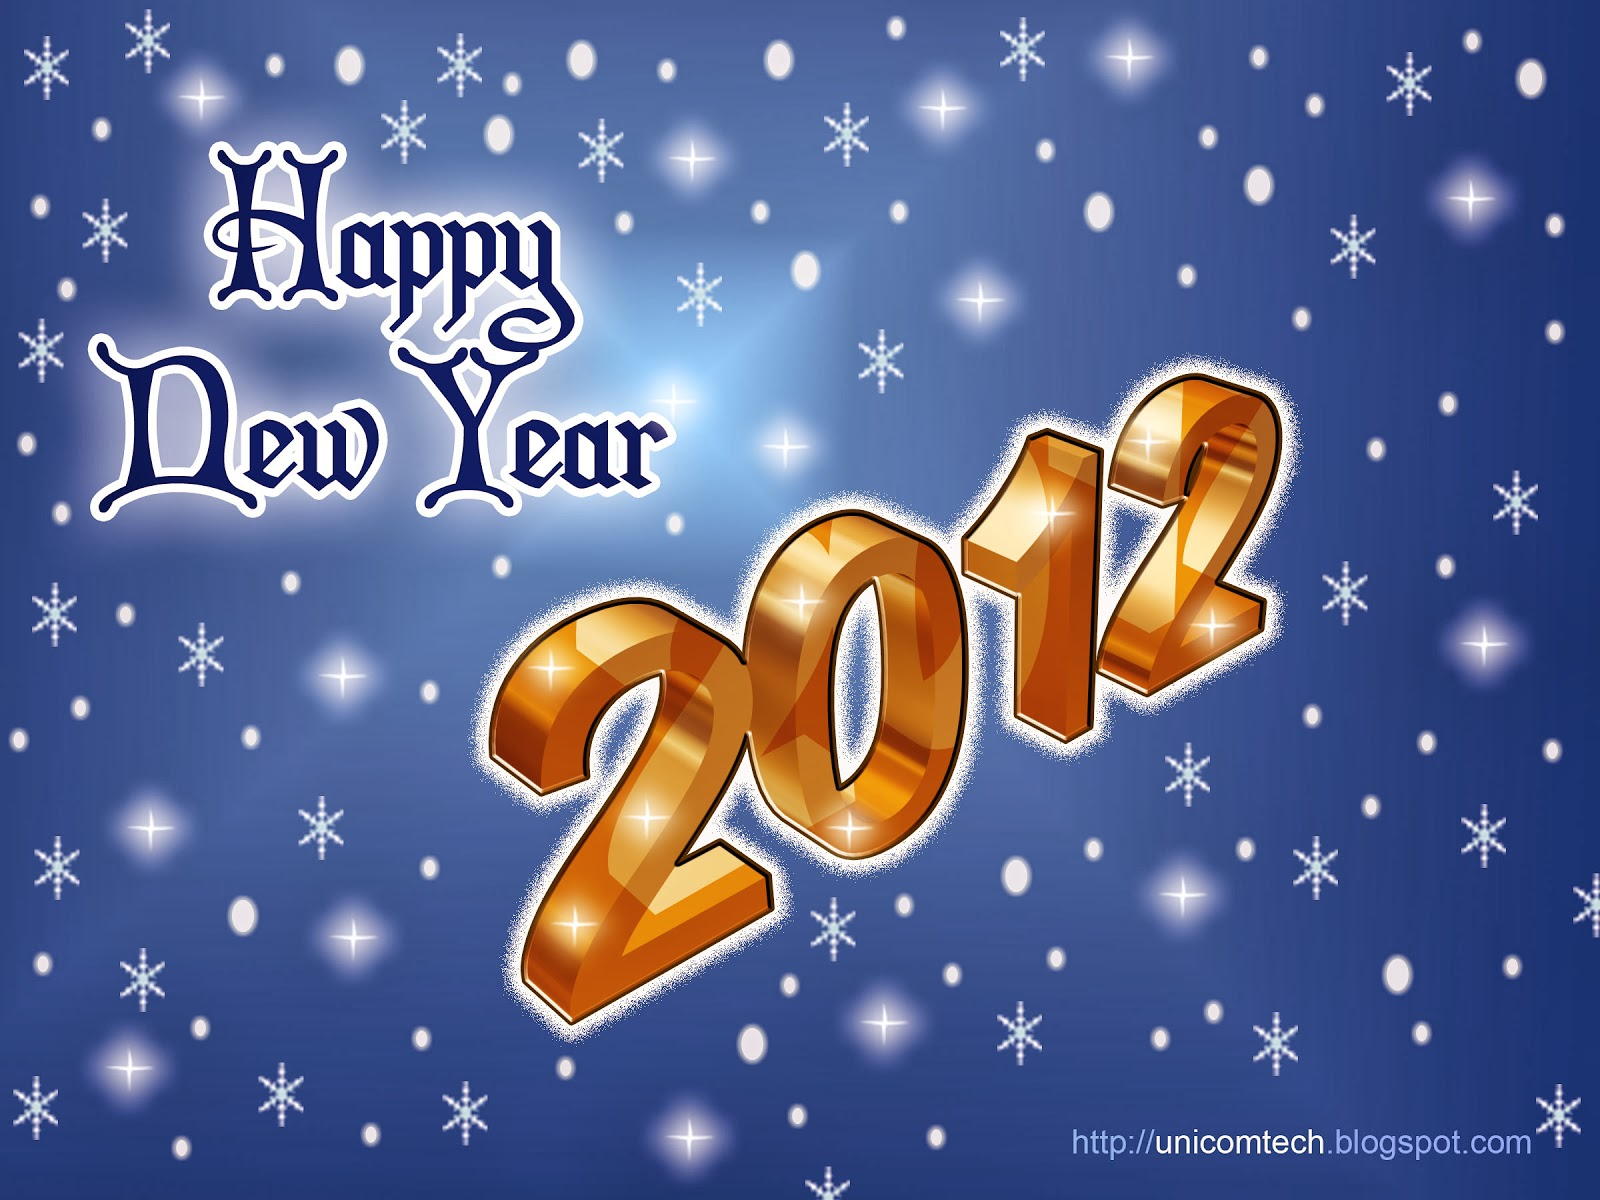 Happy New Year Greetings Cards HD 2012 ECards. 1600 x 1200.Handmade Greeting Cards Happy New Year